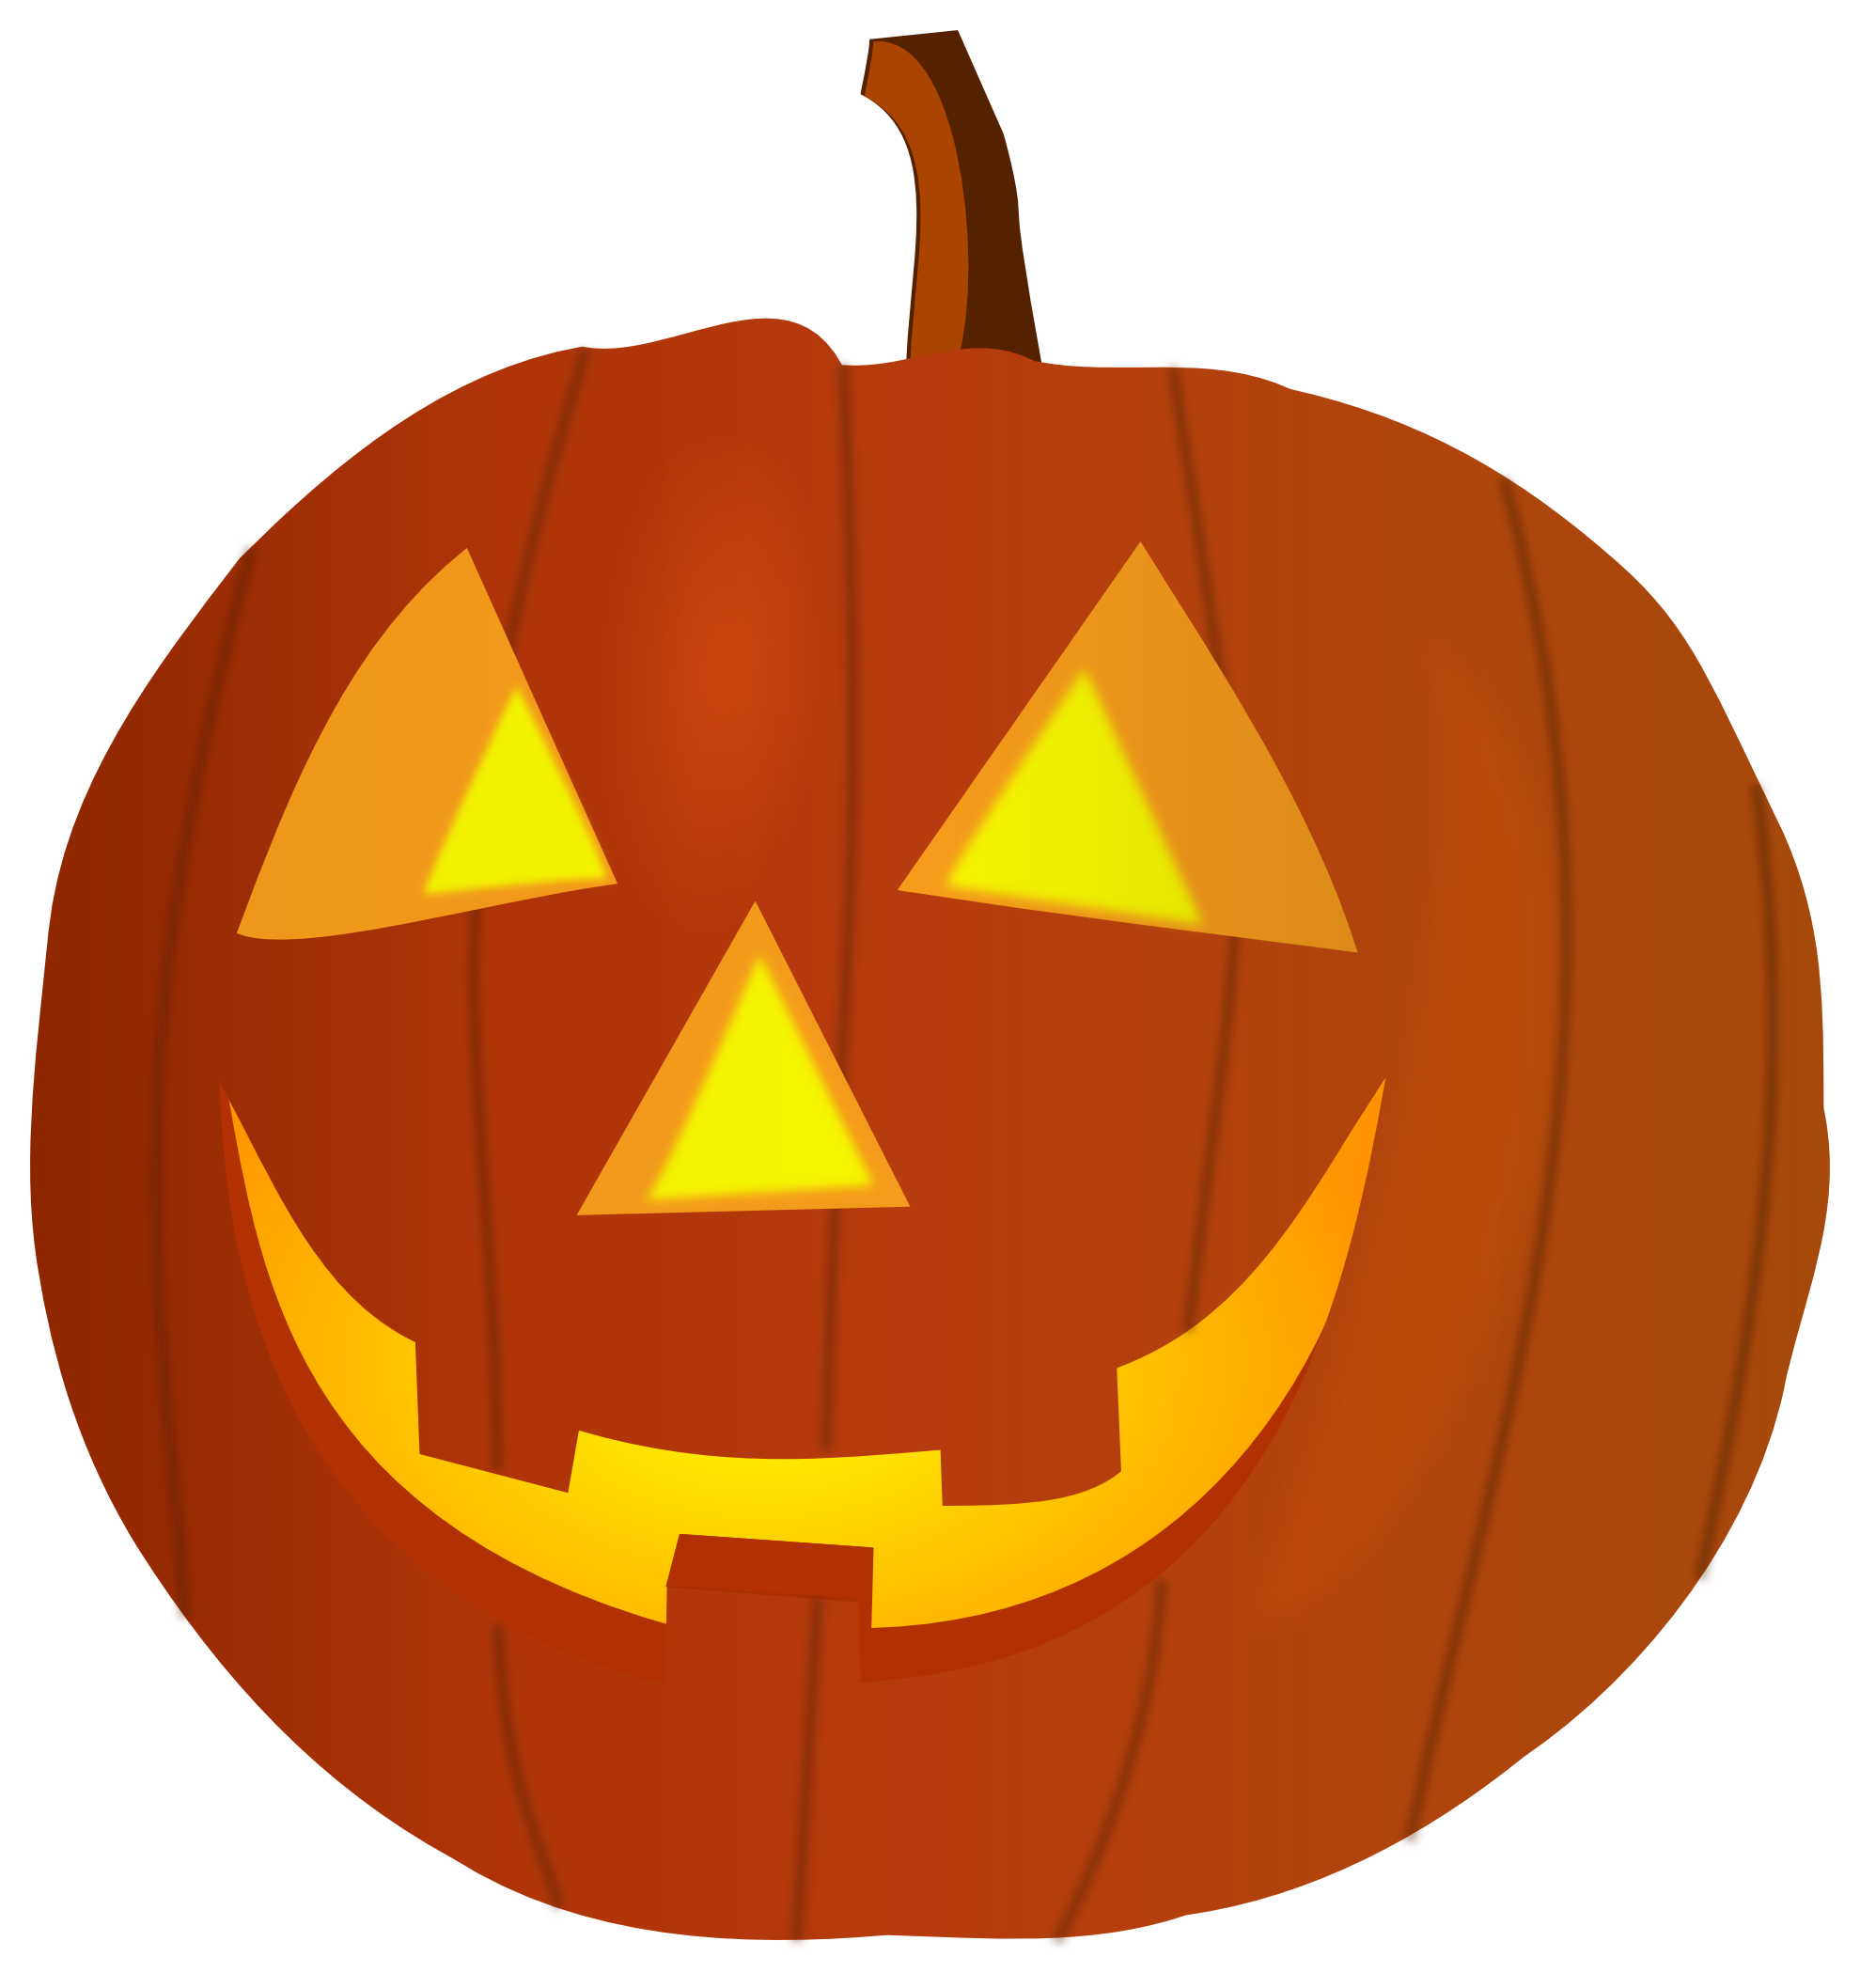 Happy Halloween Pumpkin Clipart | Clipart Panda - Free Clipart Images